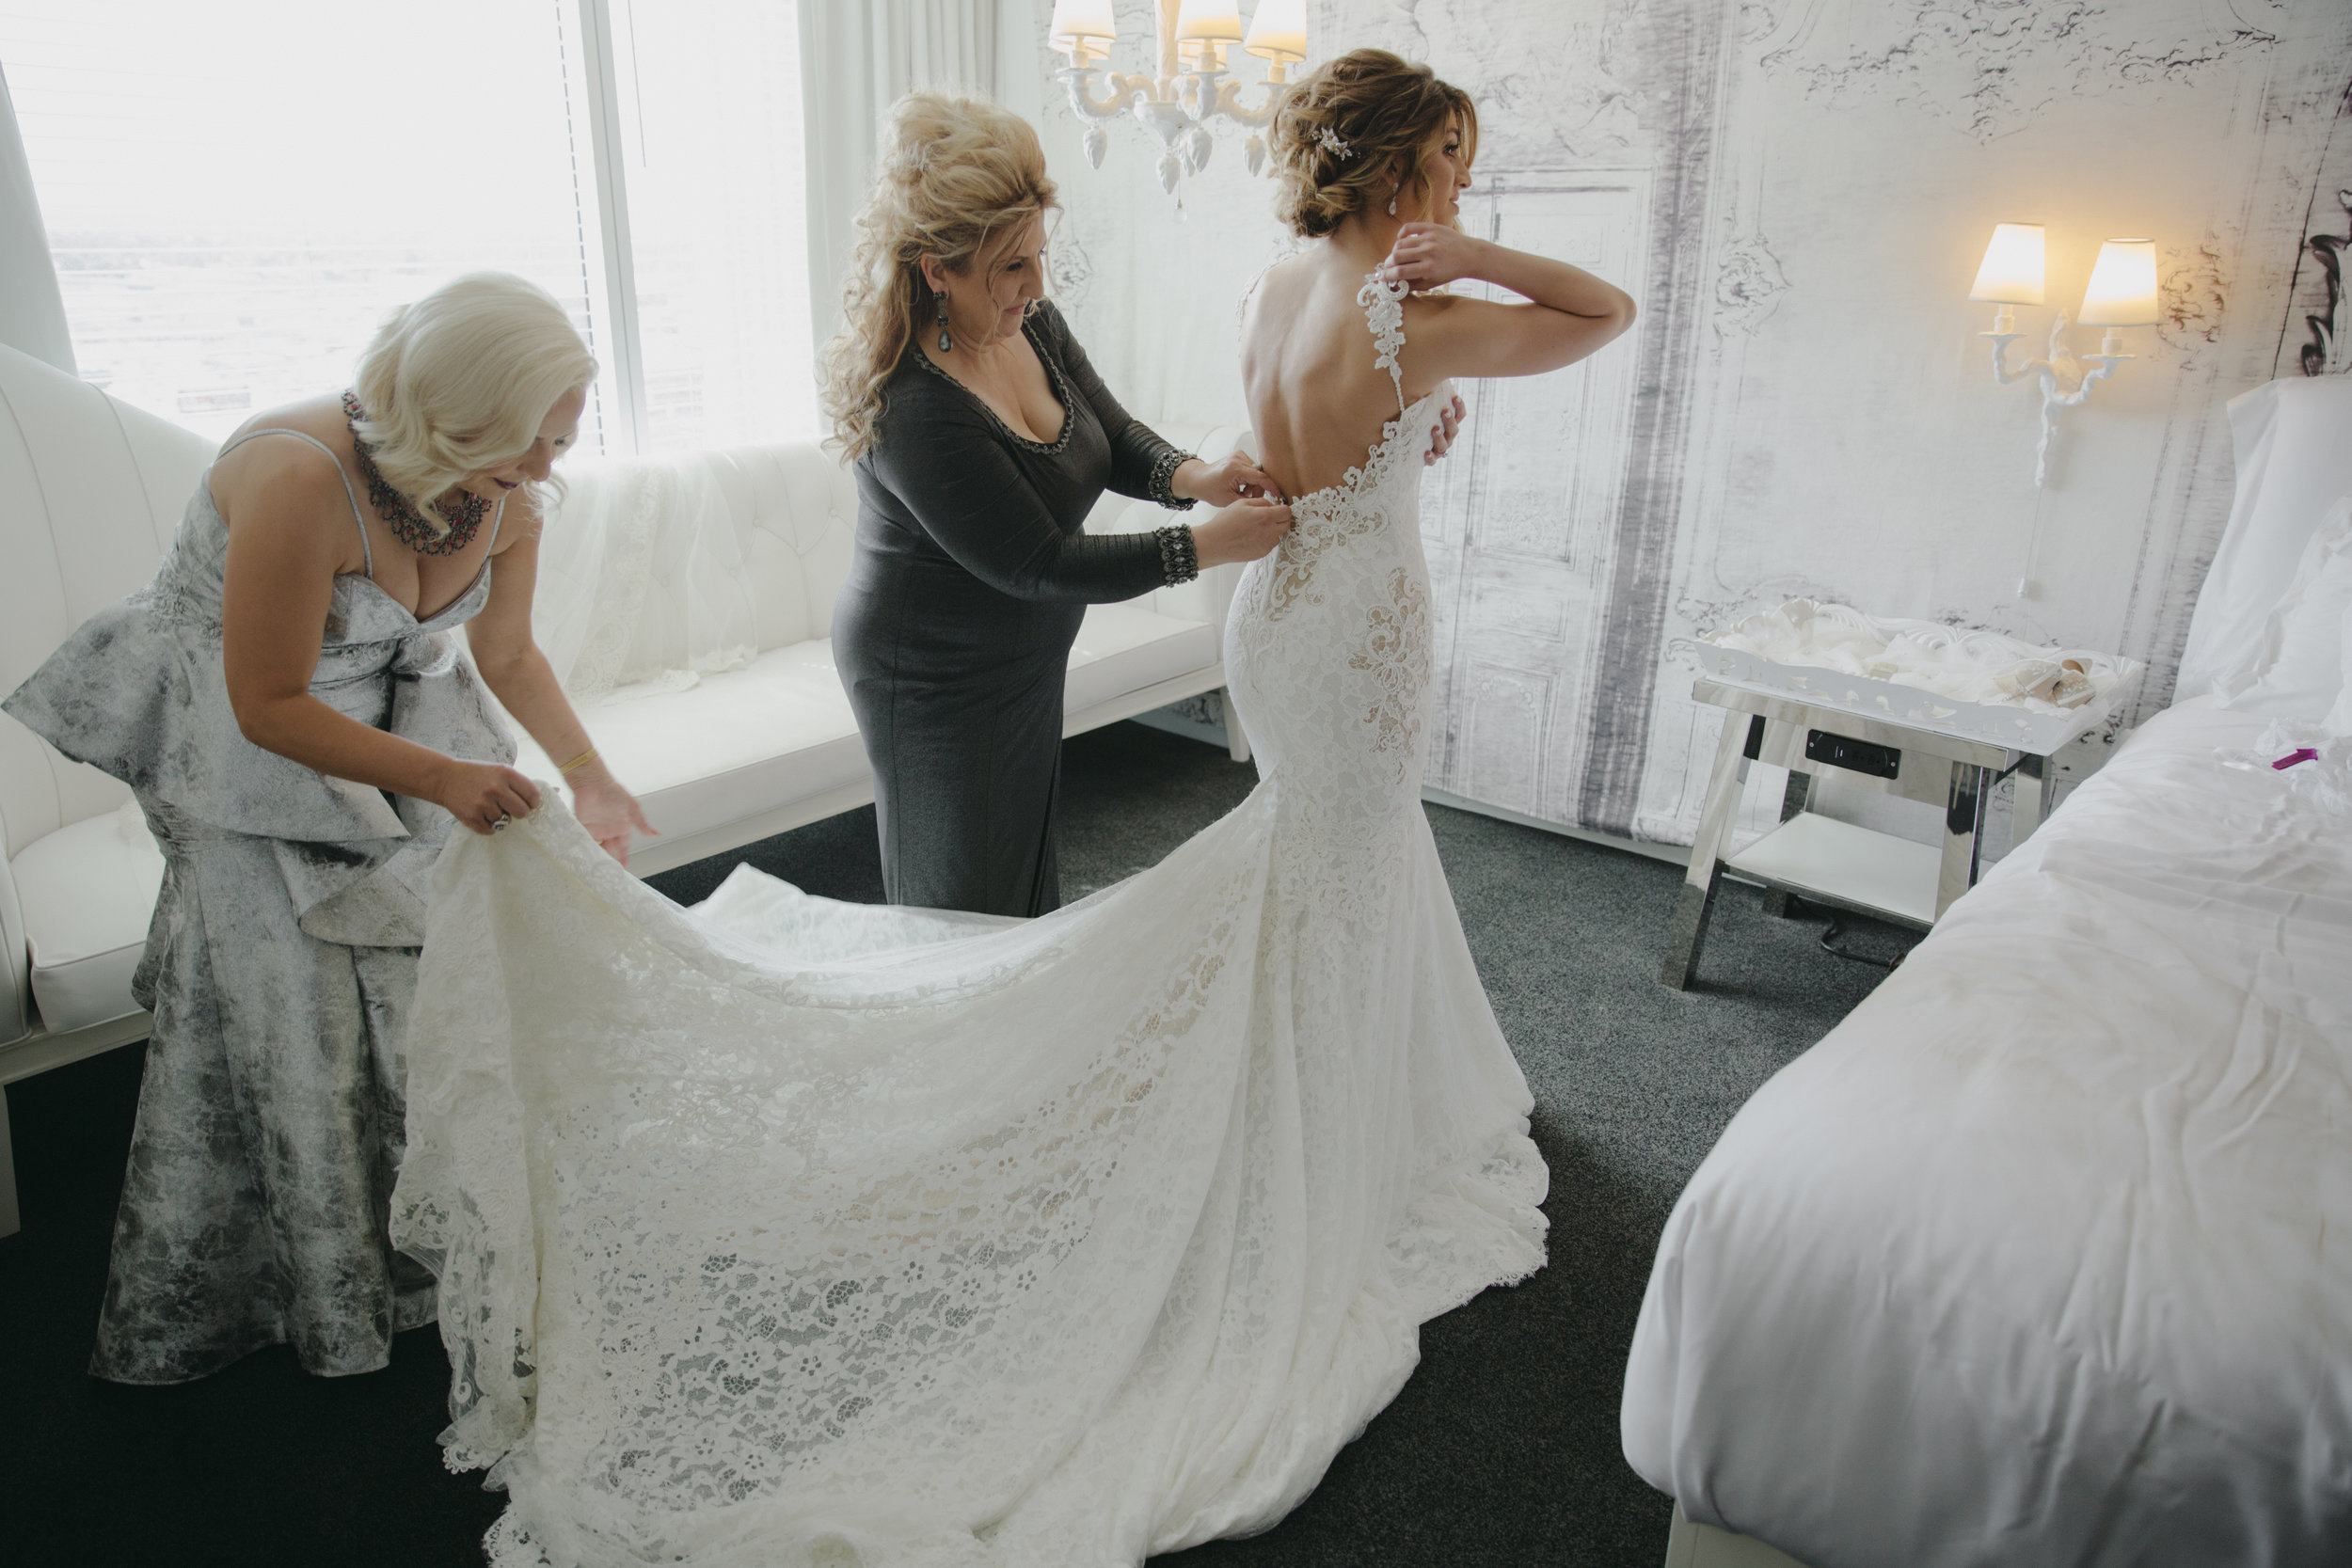 Luxury Destination Wedding Planning and Event Design by  Andrea Eppolito Events  · Photos by  Stephen Salazar  · Bride getting dressed.